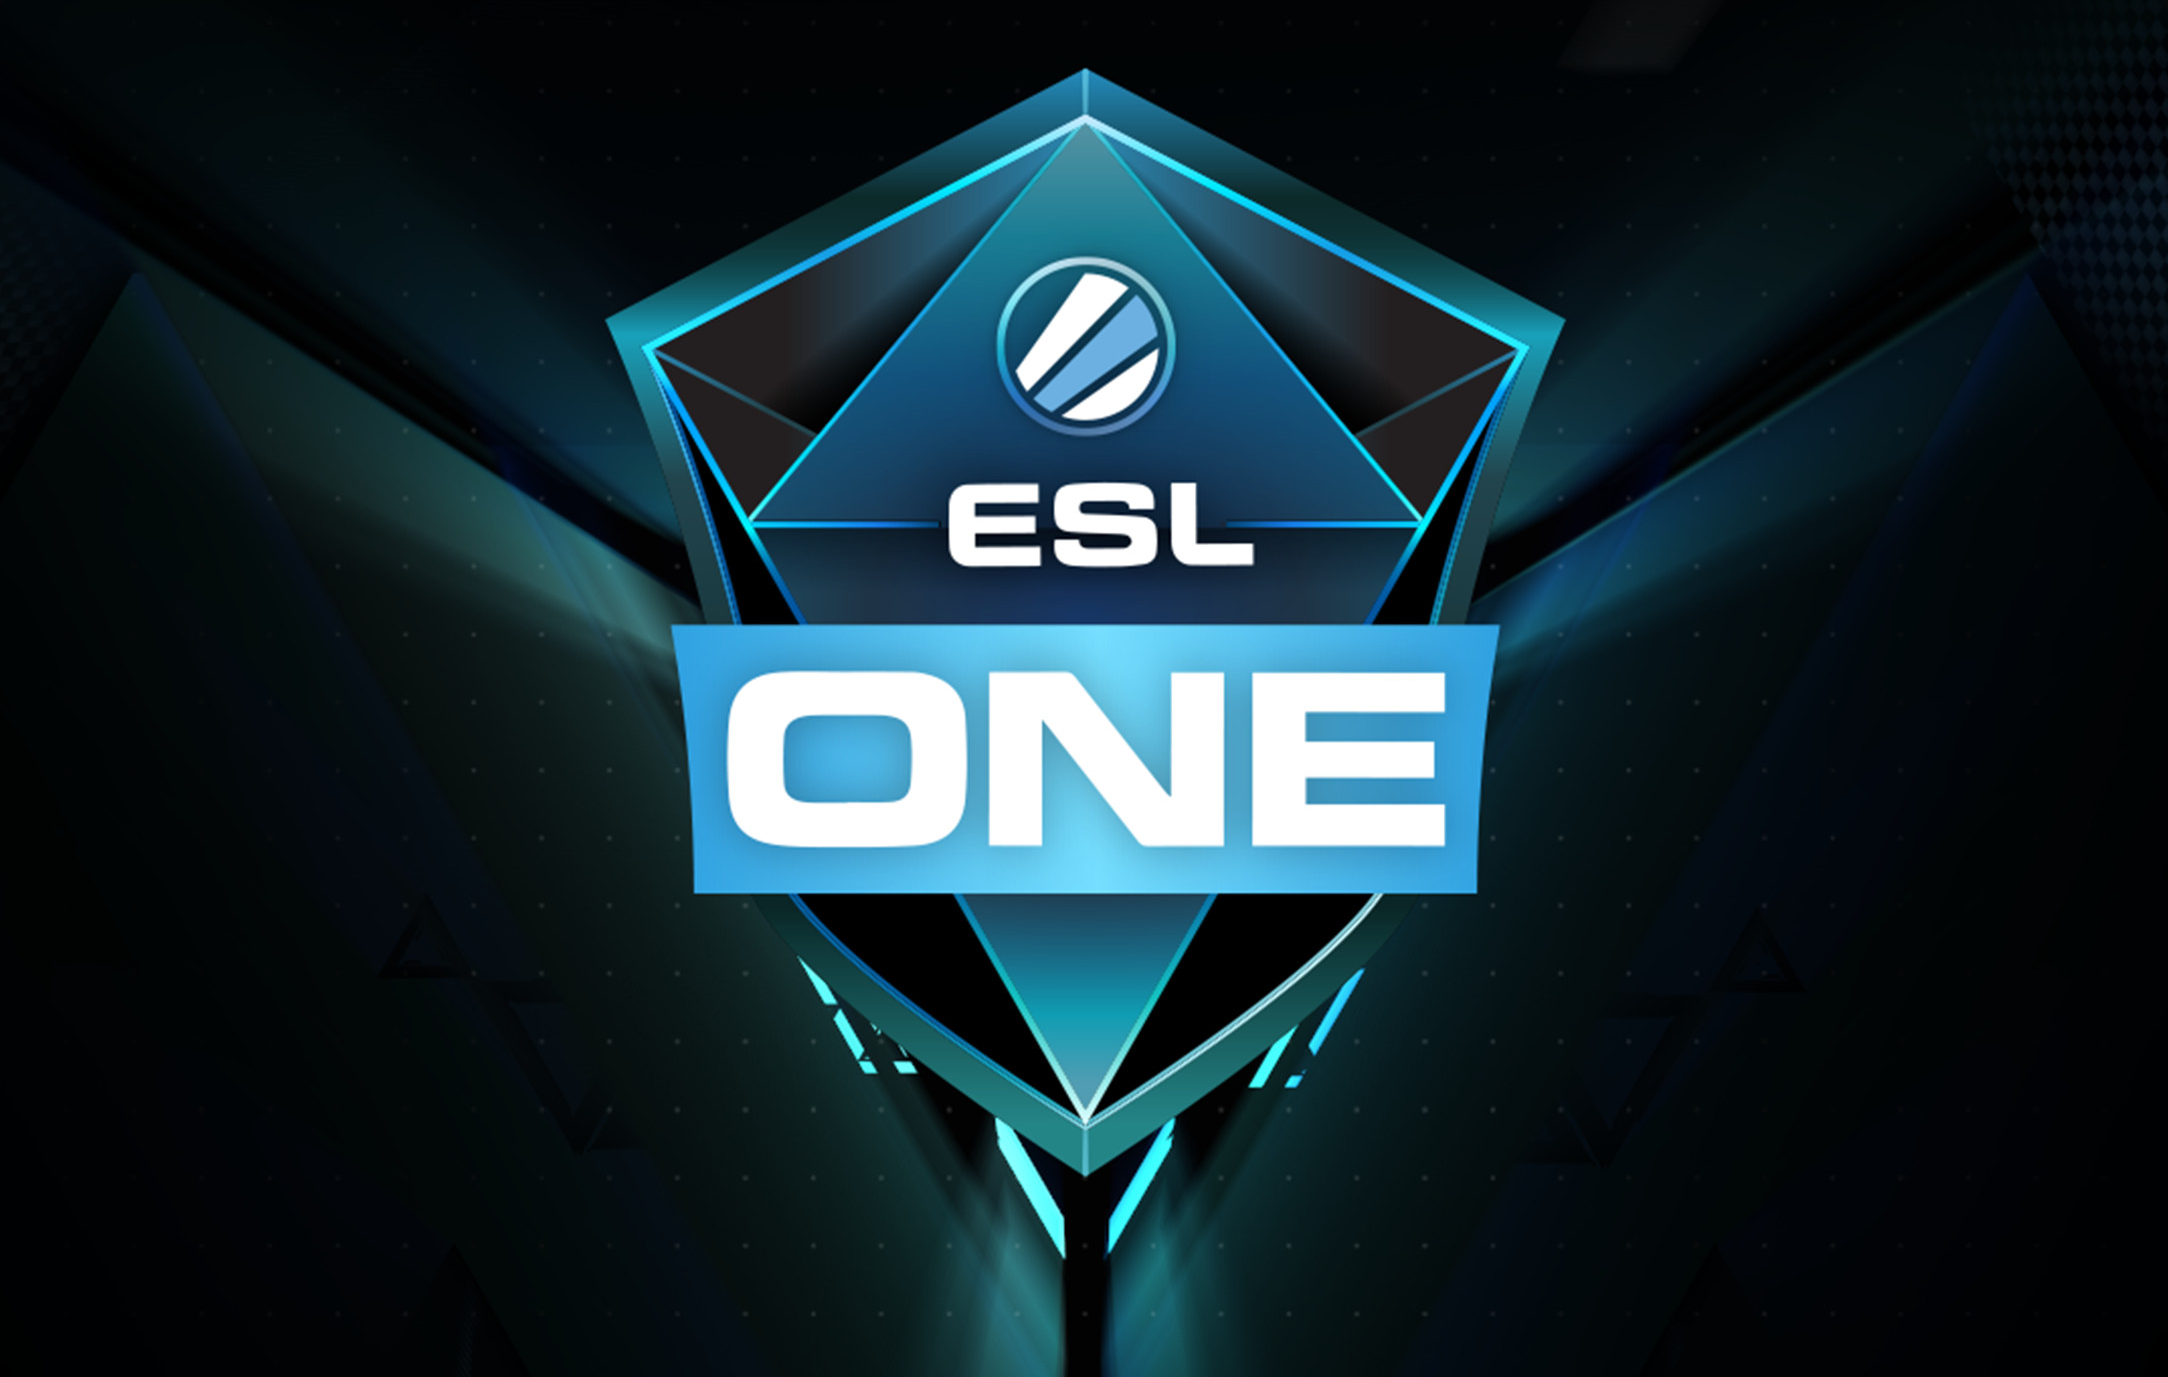 How to Watch ESL One Live